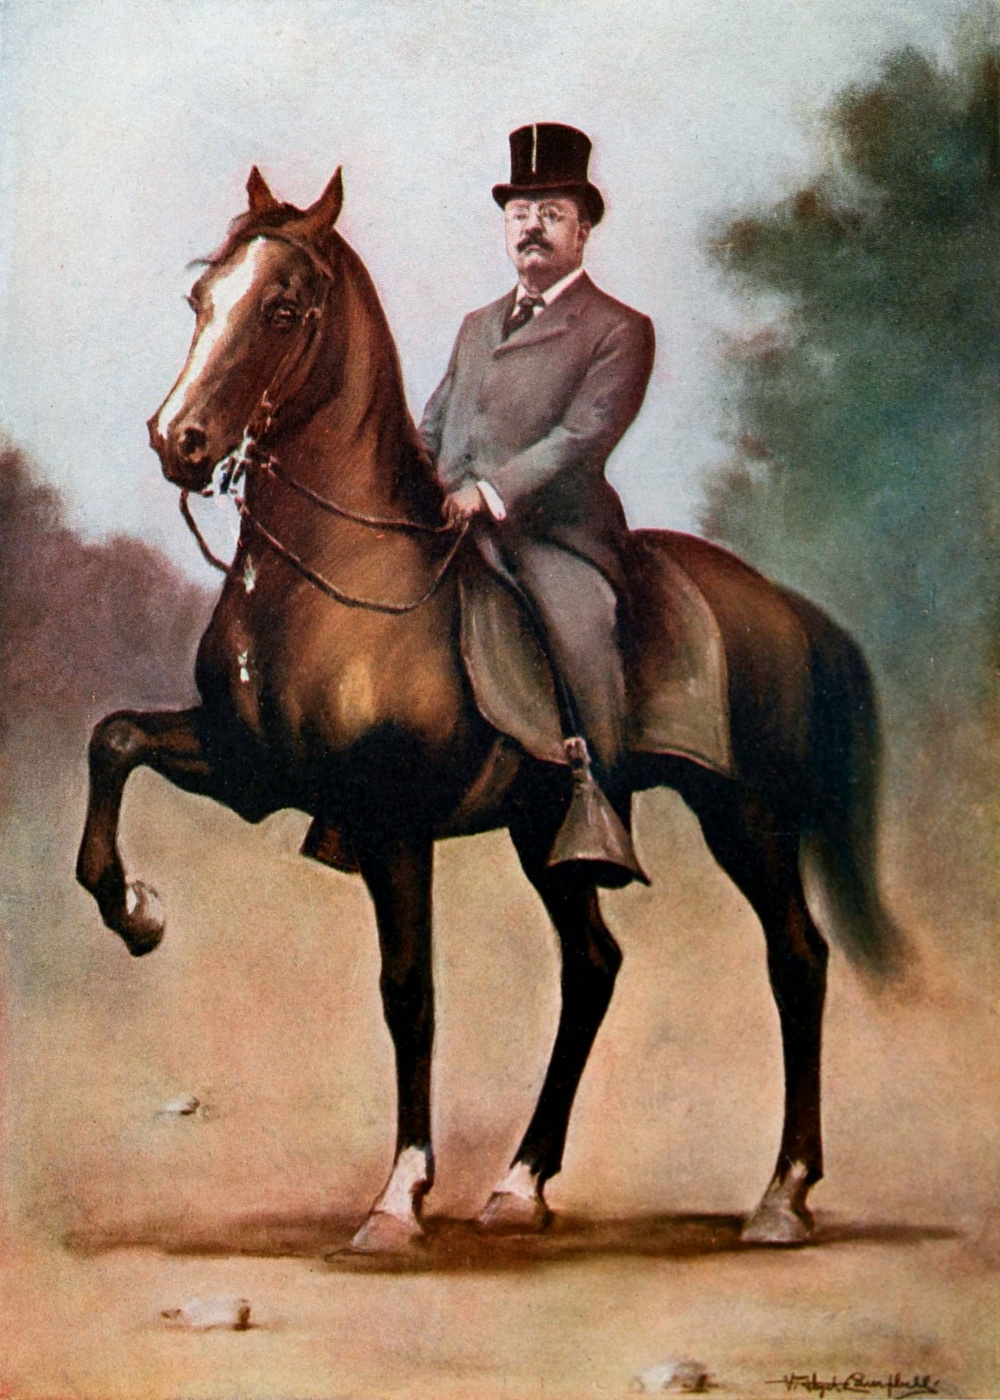 Not that kind of rider, though Teddy Roosevelt is relevant to this podcast.